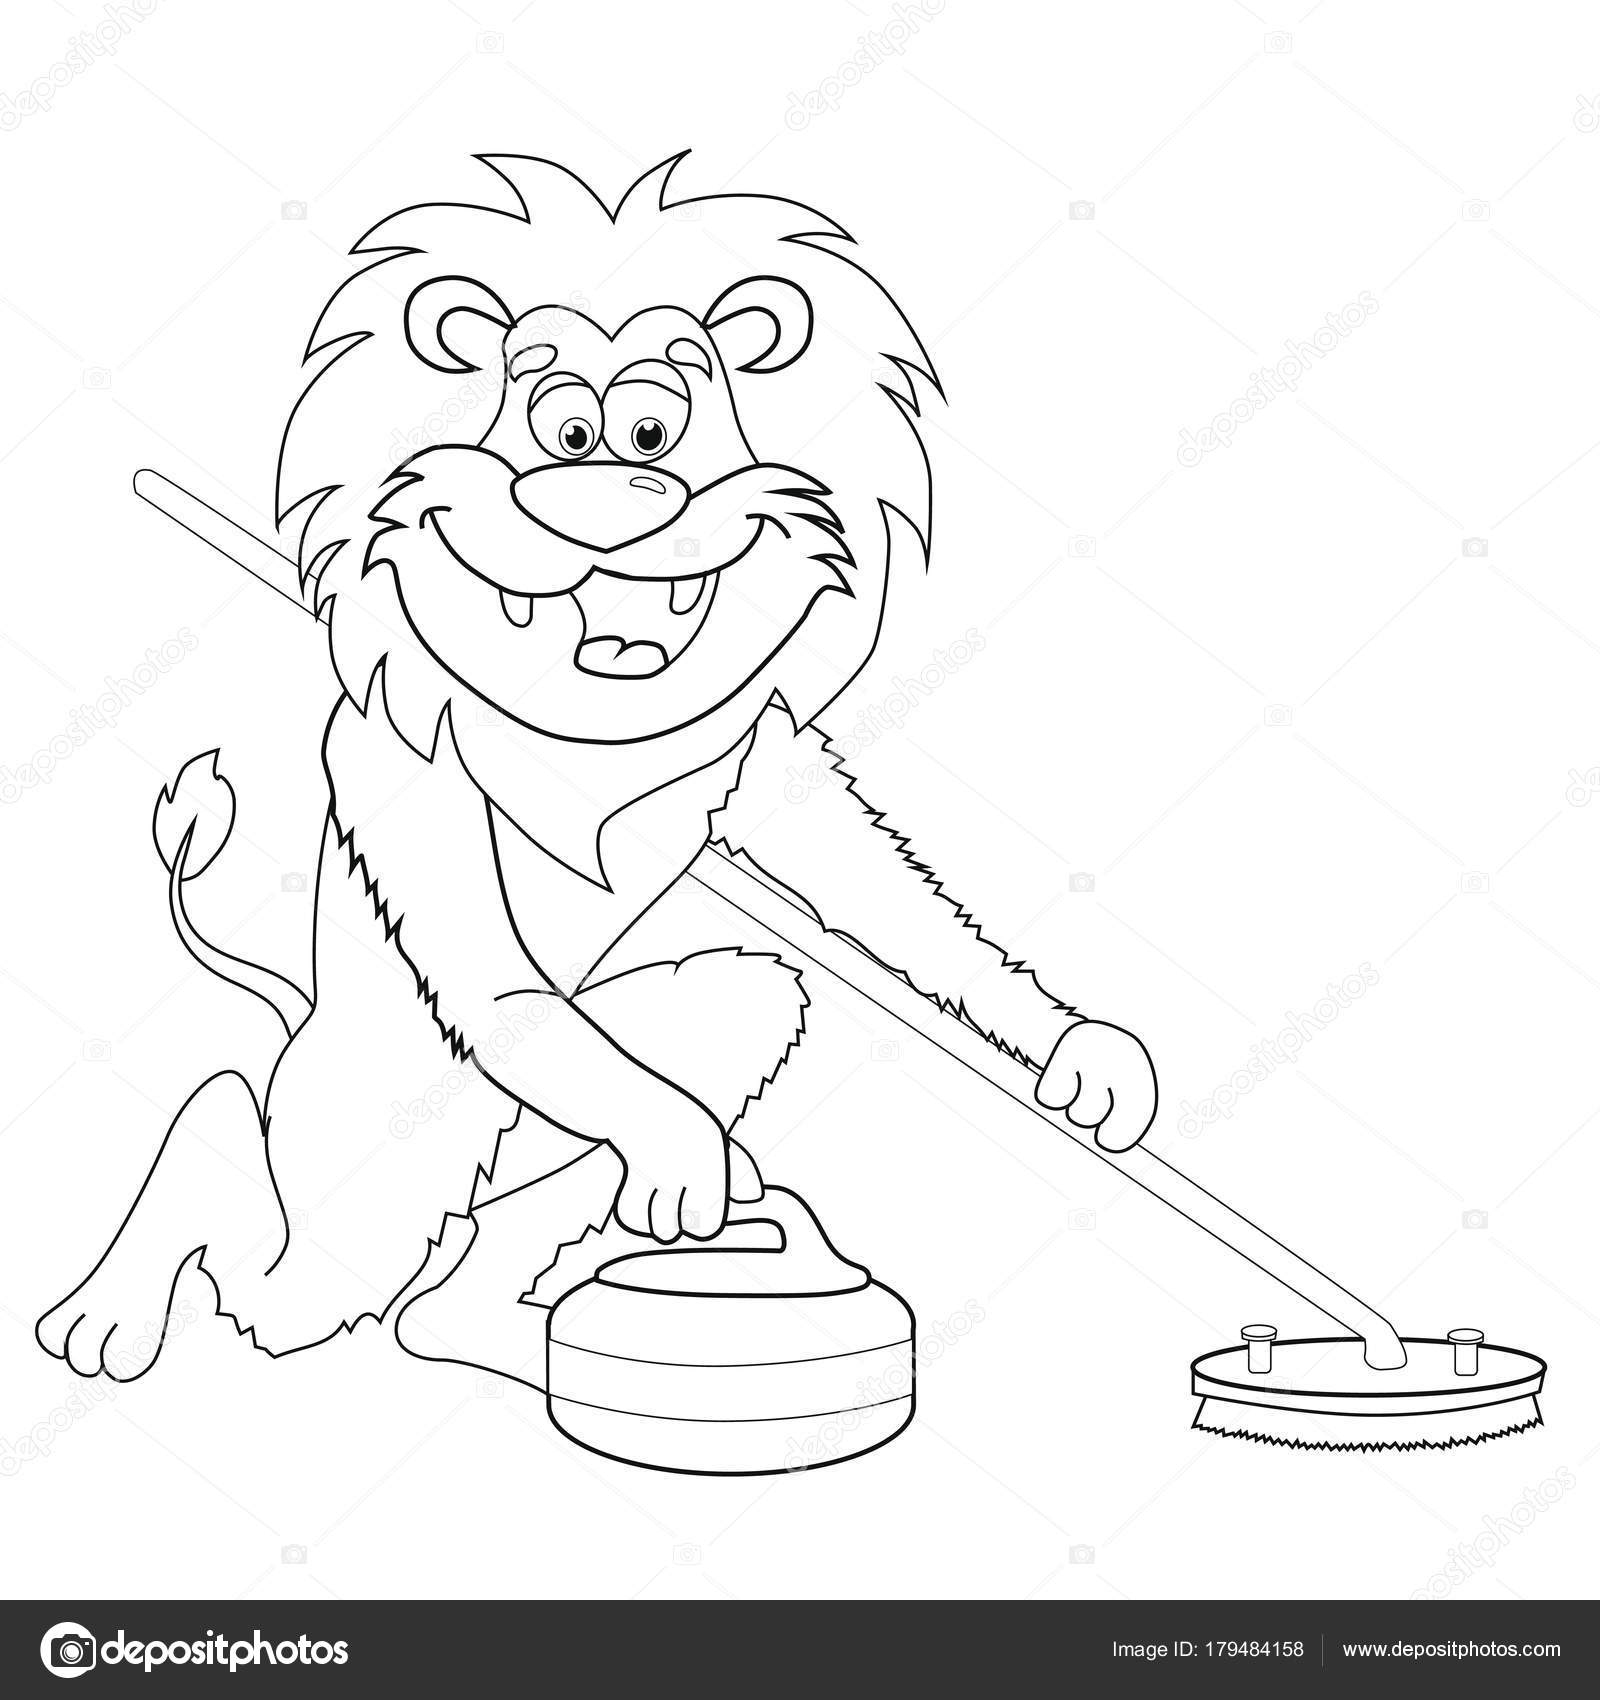 Coloring Book Lion Curling Cartoon Style Isolated Image White ...